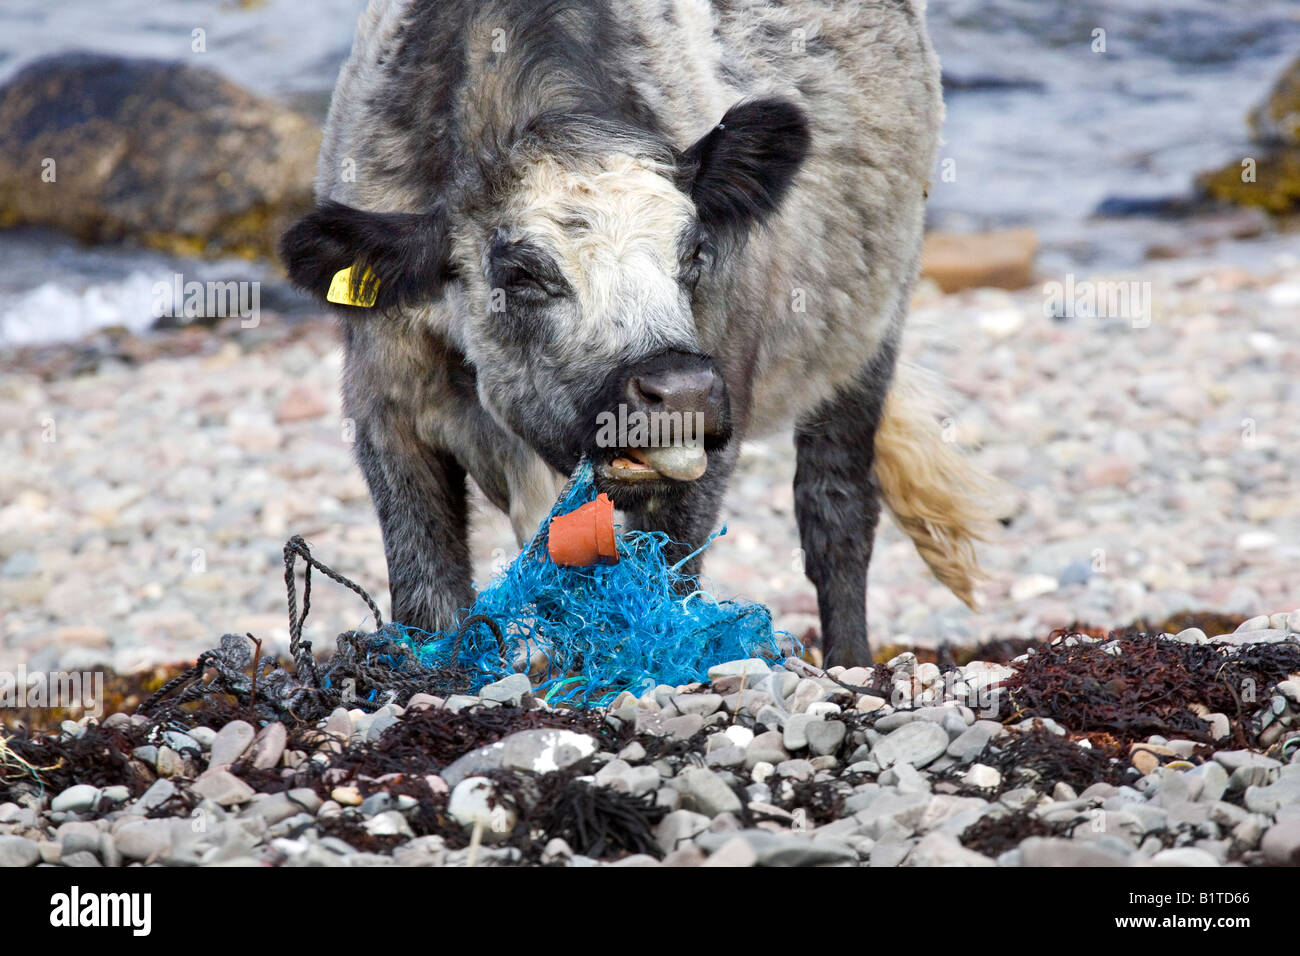 Plastic Tide, Coastal beach pollution at Ord, Loch Eishort. Cows animals,eating,netting, plastic bags marine litter - Stock Image